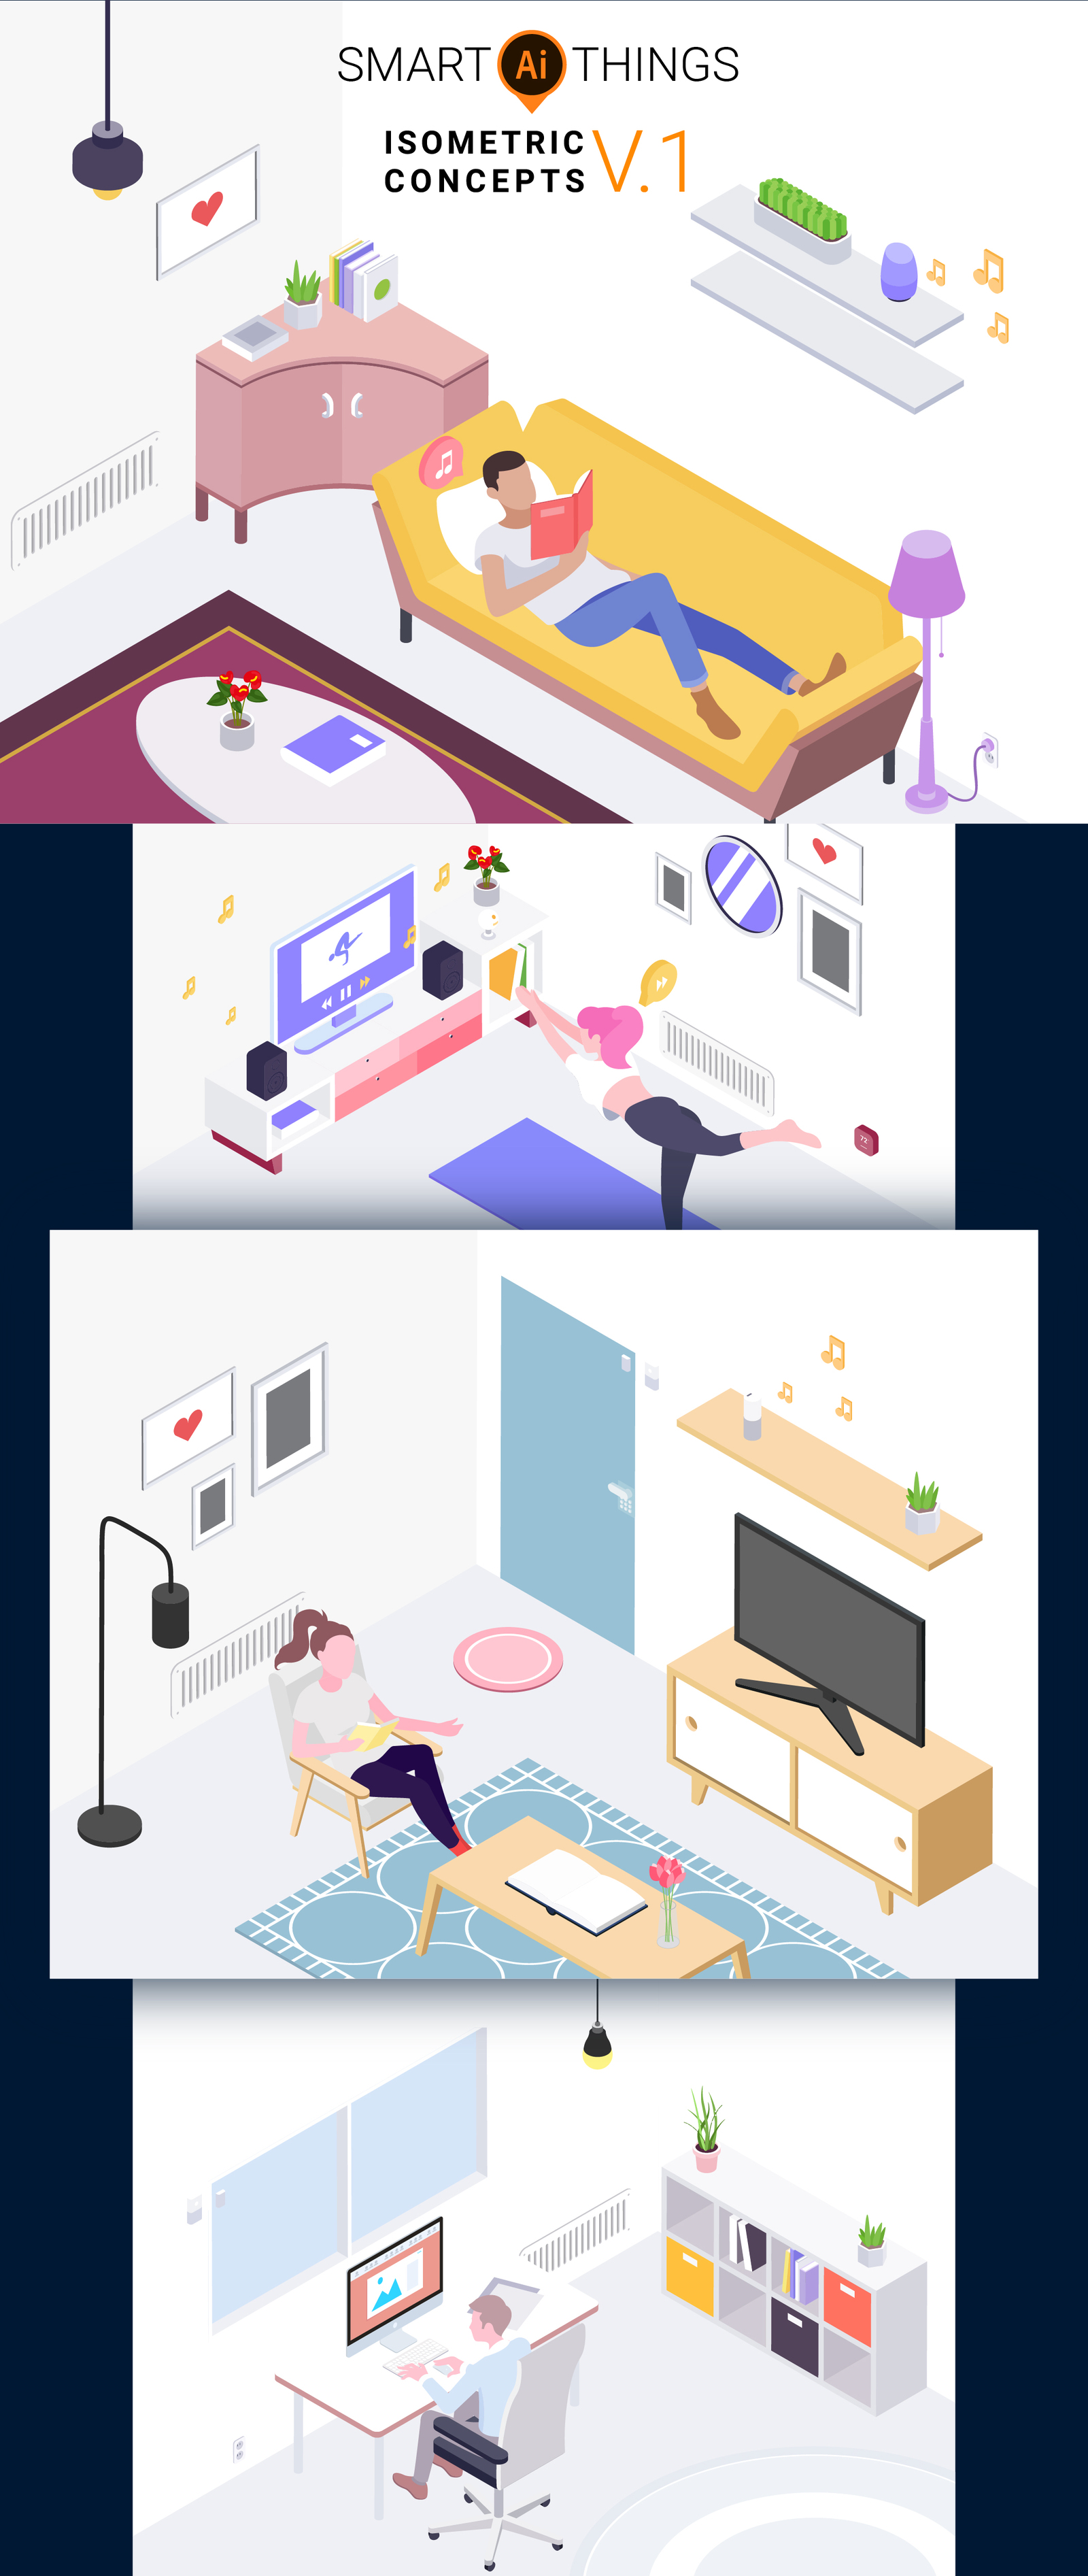 Smartthings Isometric v 1 in Illustrations on Yellow Images